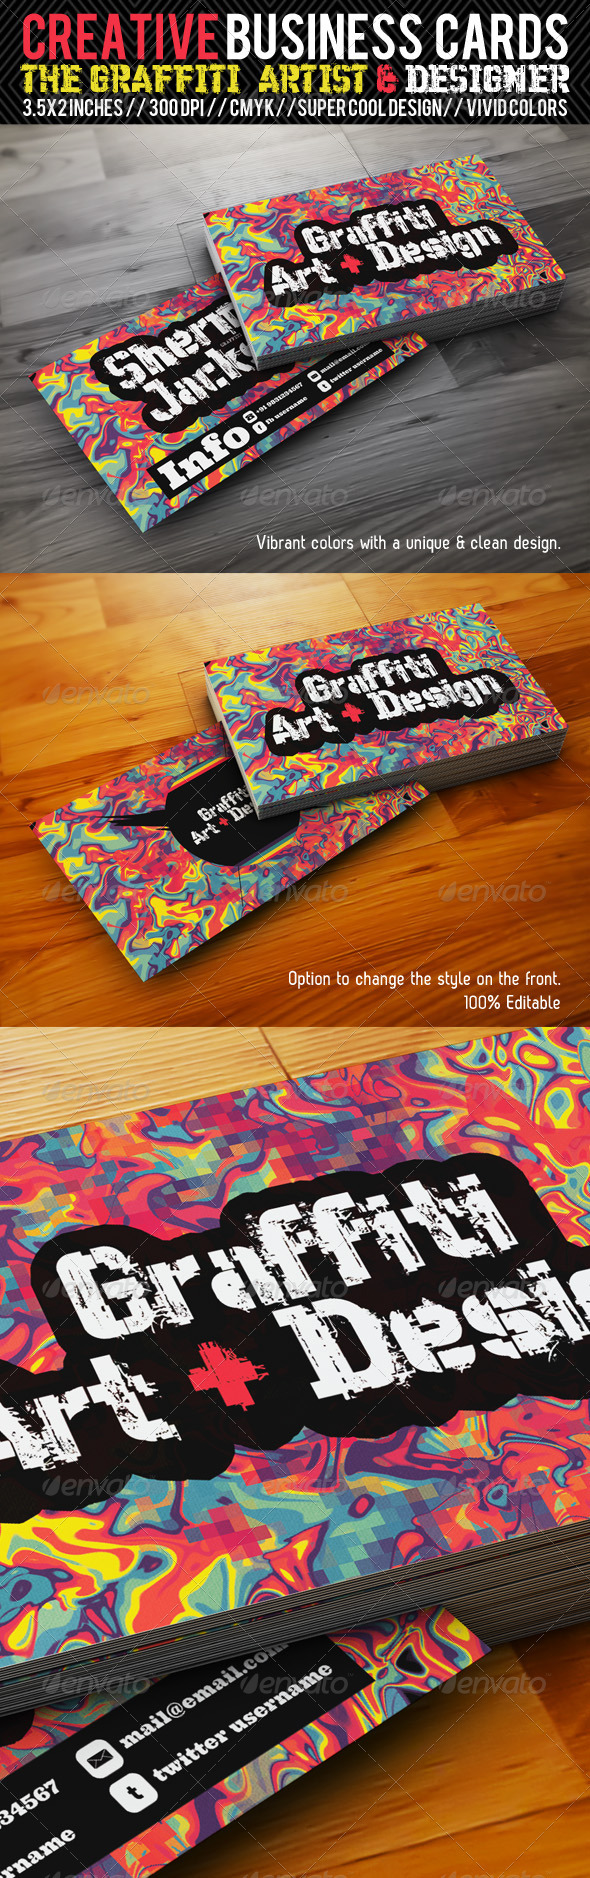 Creative Business Card#3-Grafitti Art & Designer - Creative Business Cards